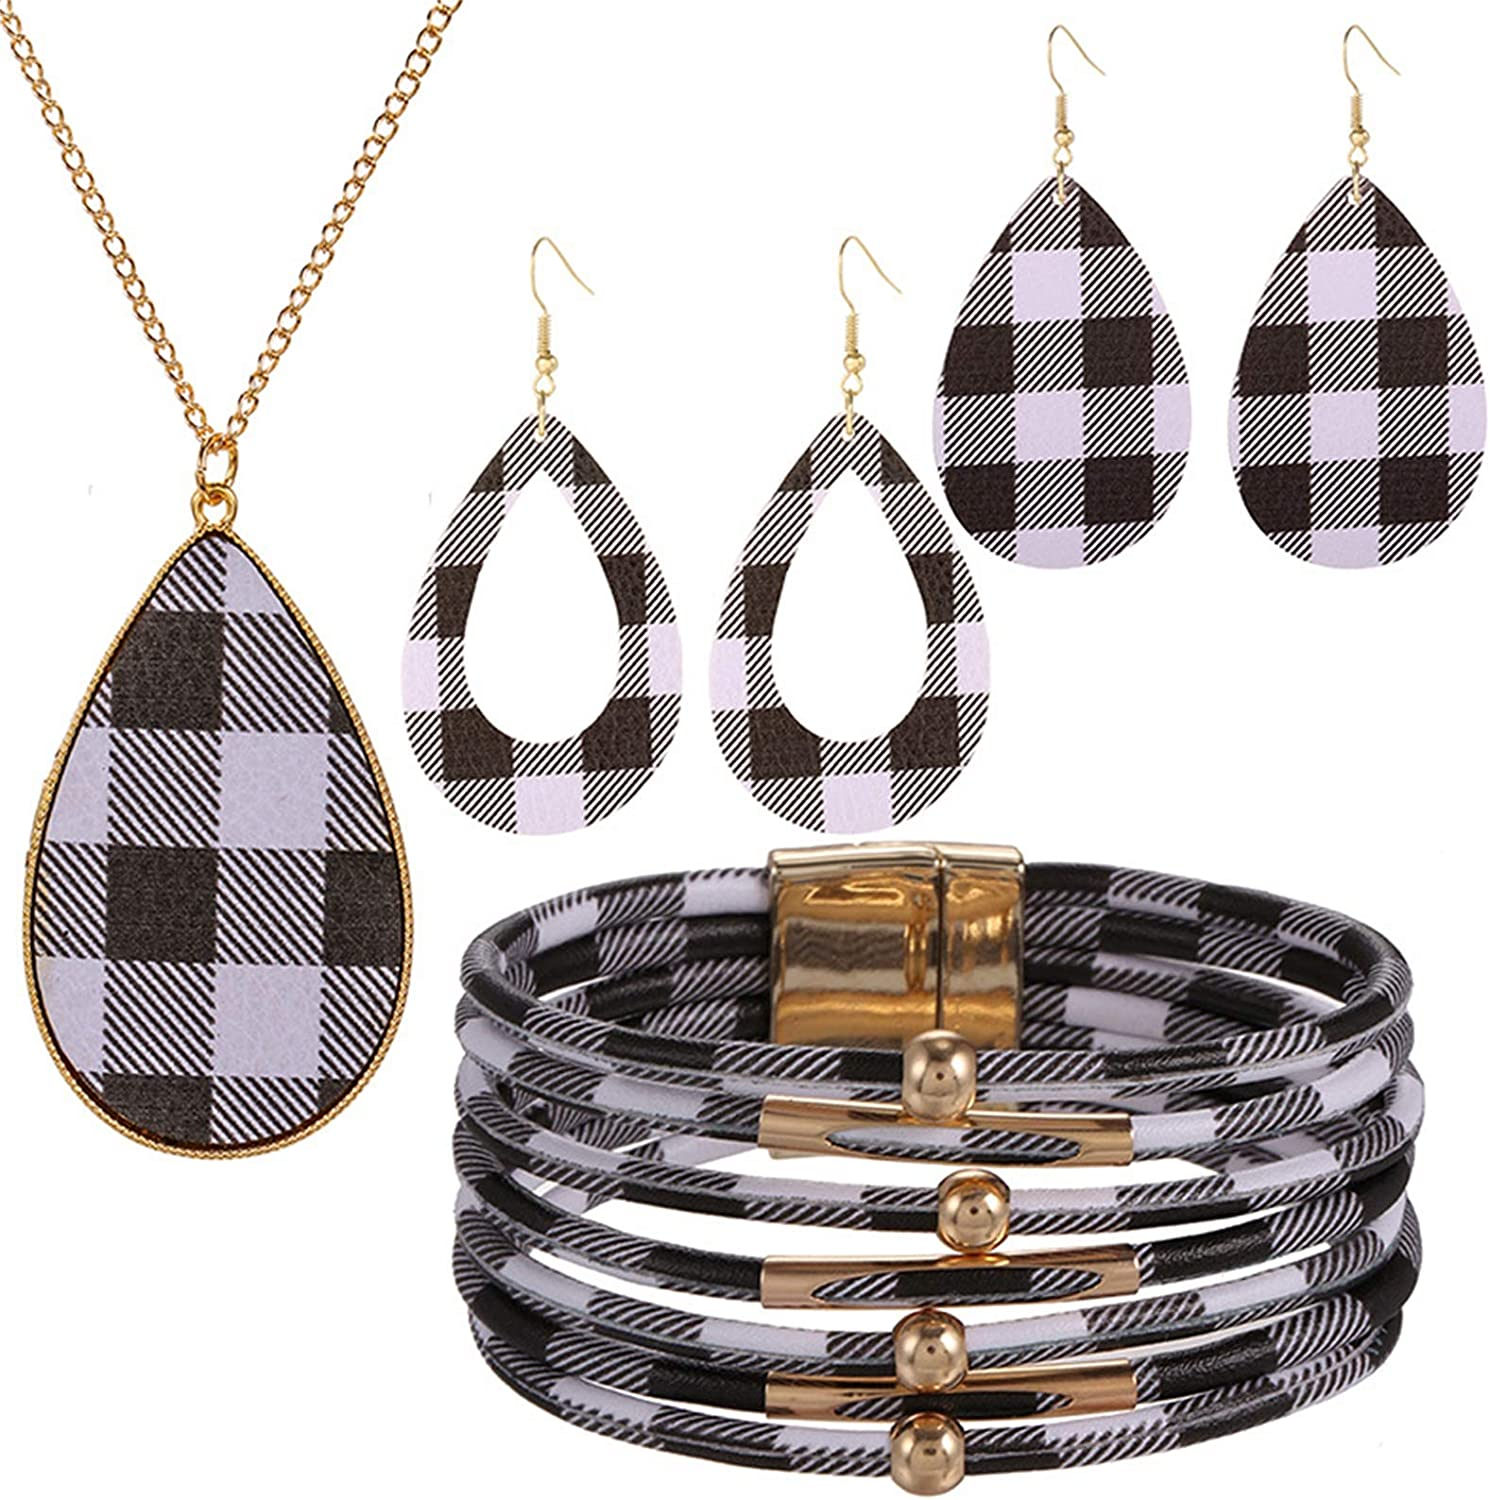 Pingyongchang 4-6 Pieces Christmas Plaid Print Jewelry Set Faux Leather Plaid Dangle Earring Necklace Xmas Checkered Teardrop Earrings Necklaces Lightweight Multi-Layer Gifts for Women Girls